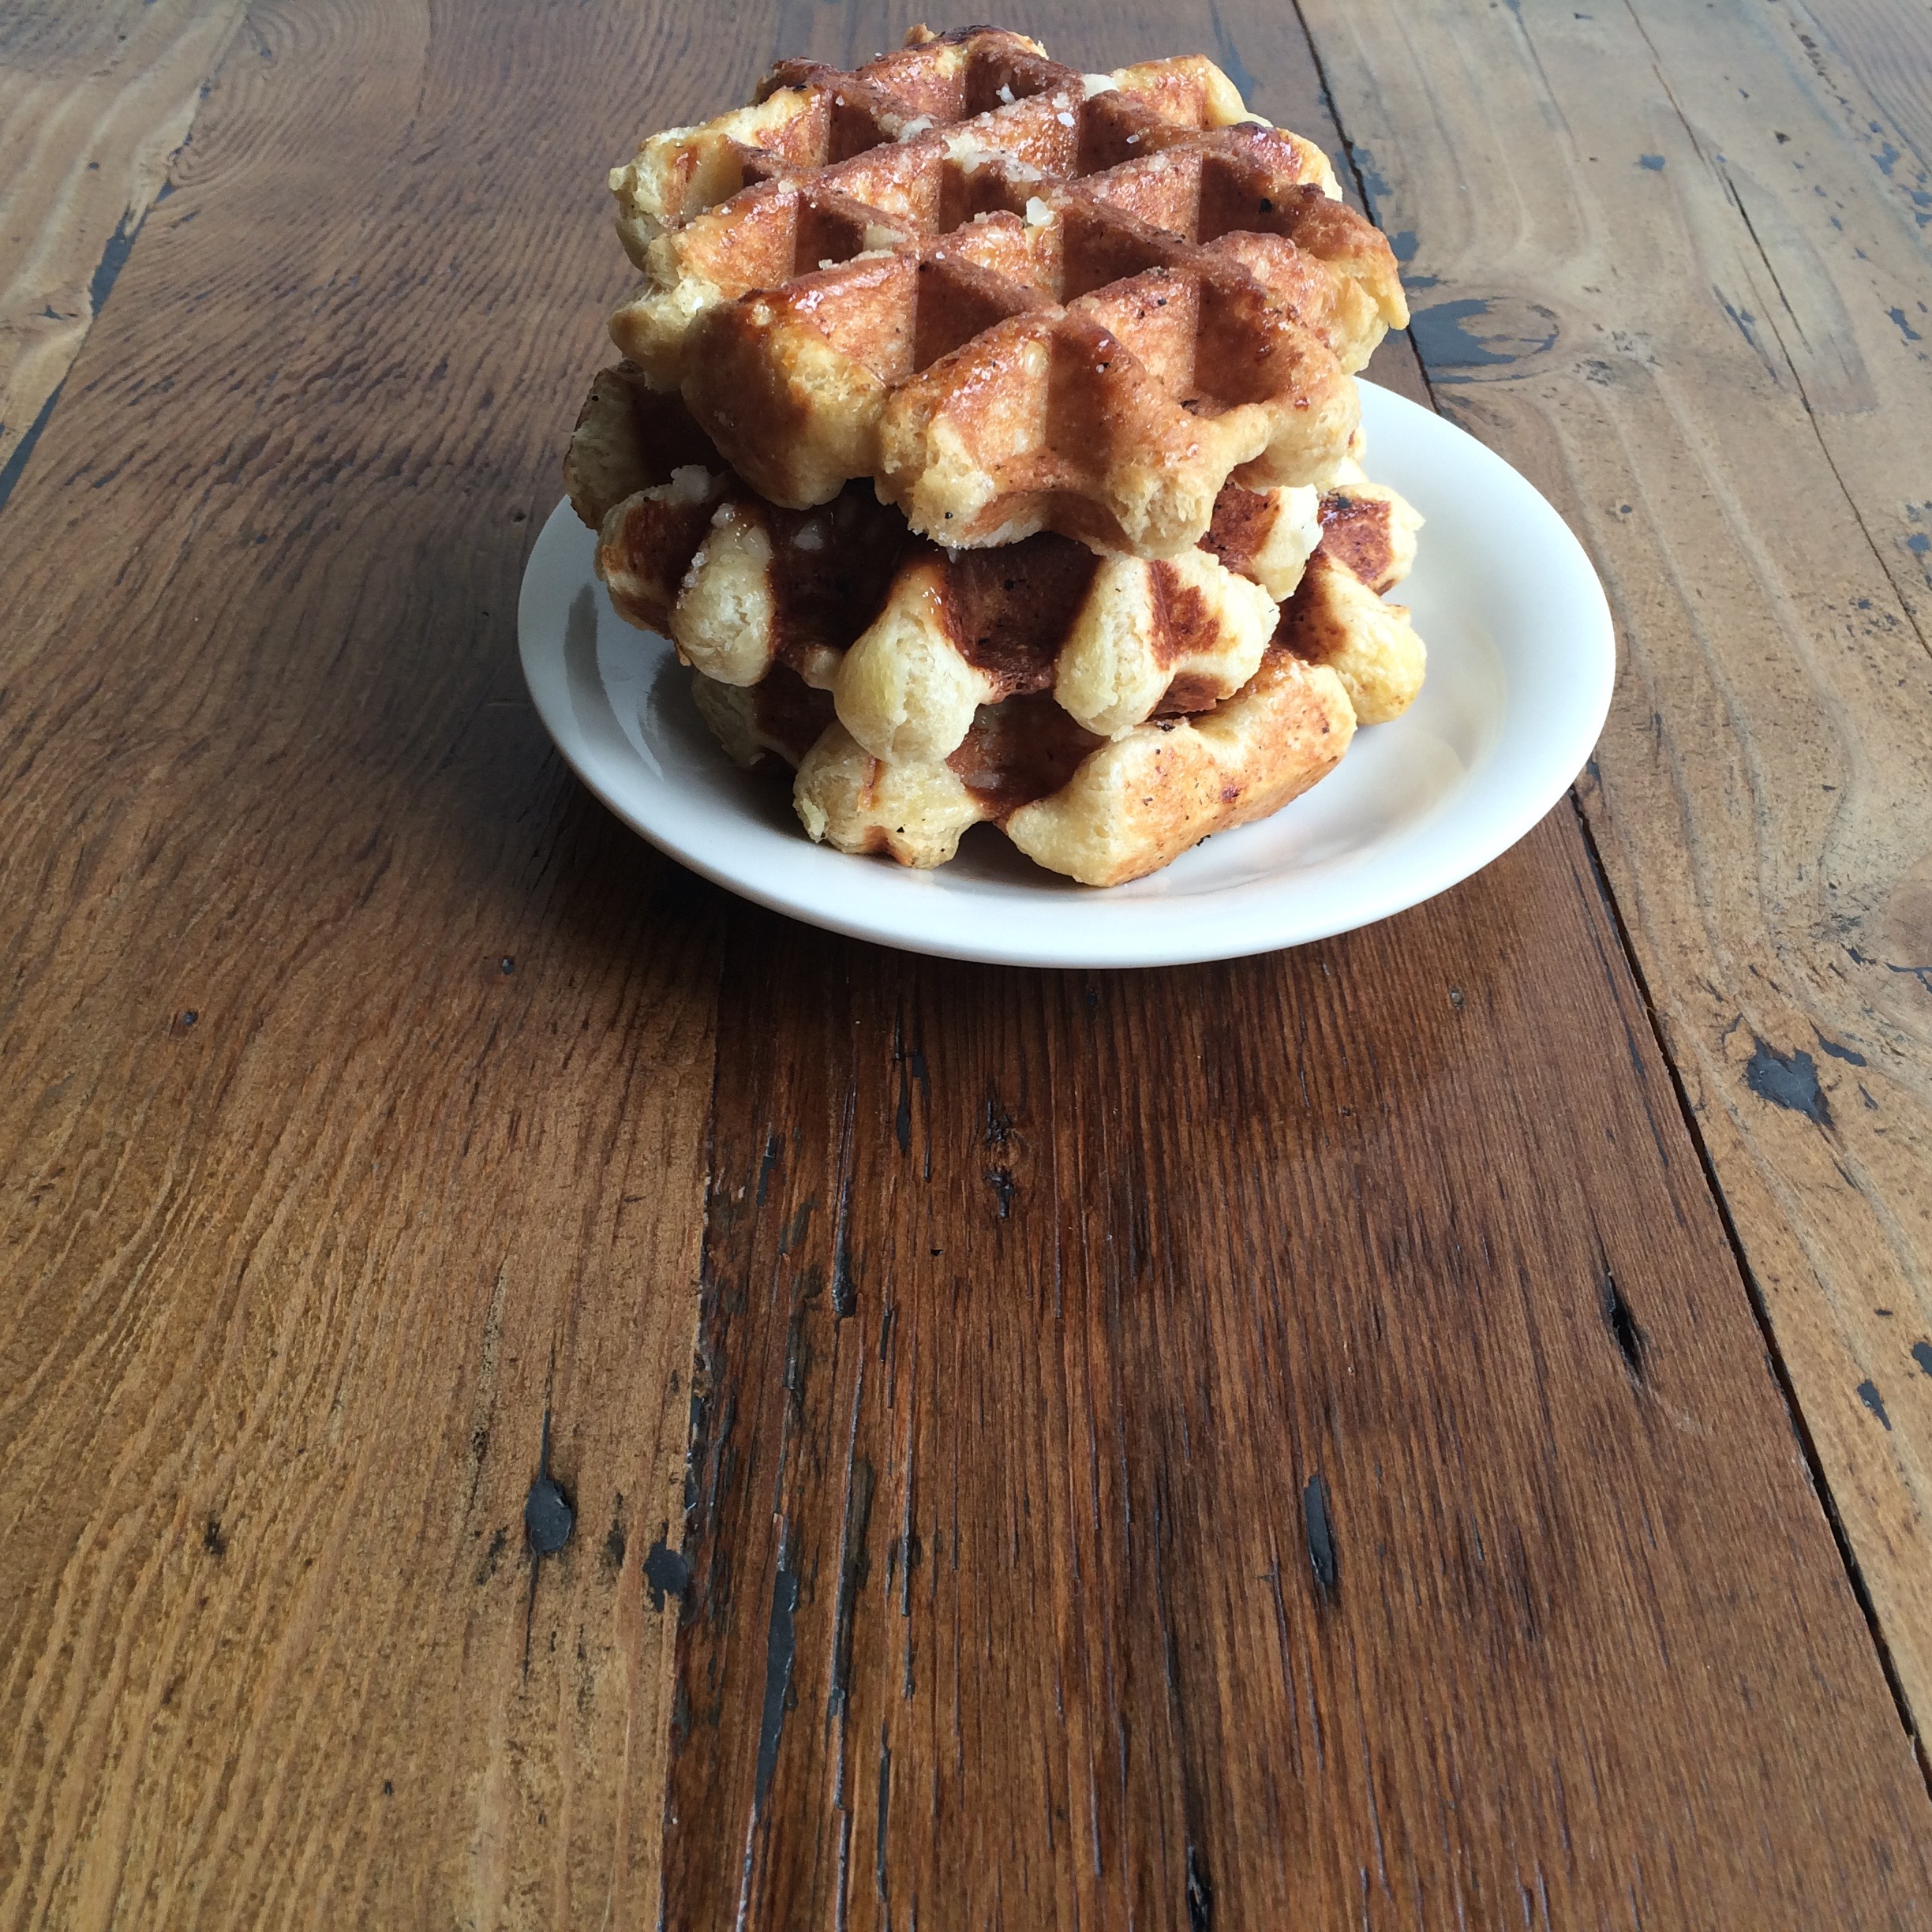 Liege style Belgian Waffles at Curio Coffee in Cambridge, MA.